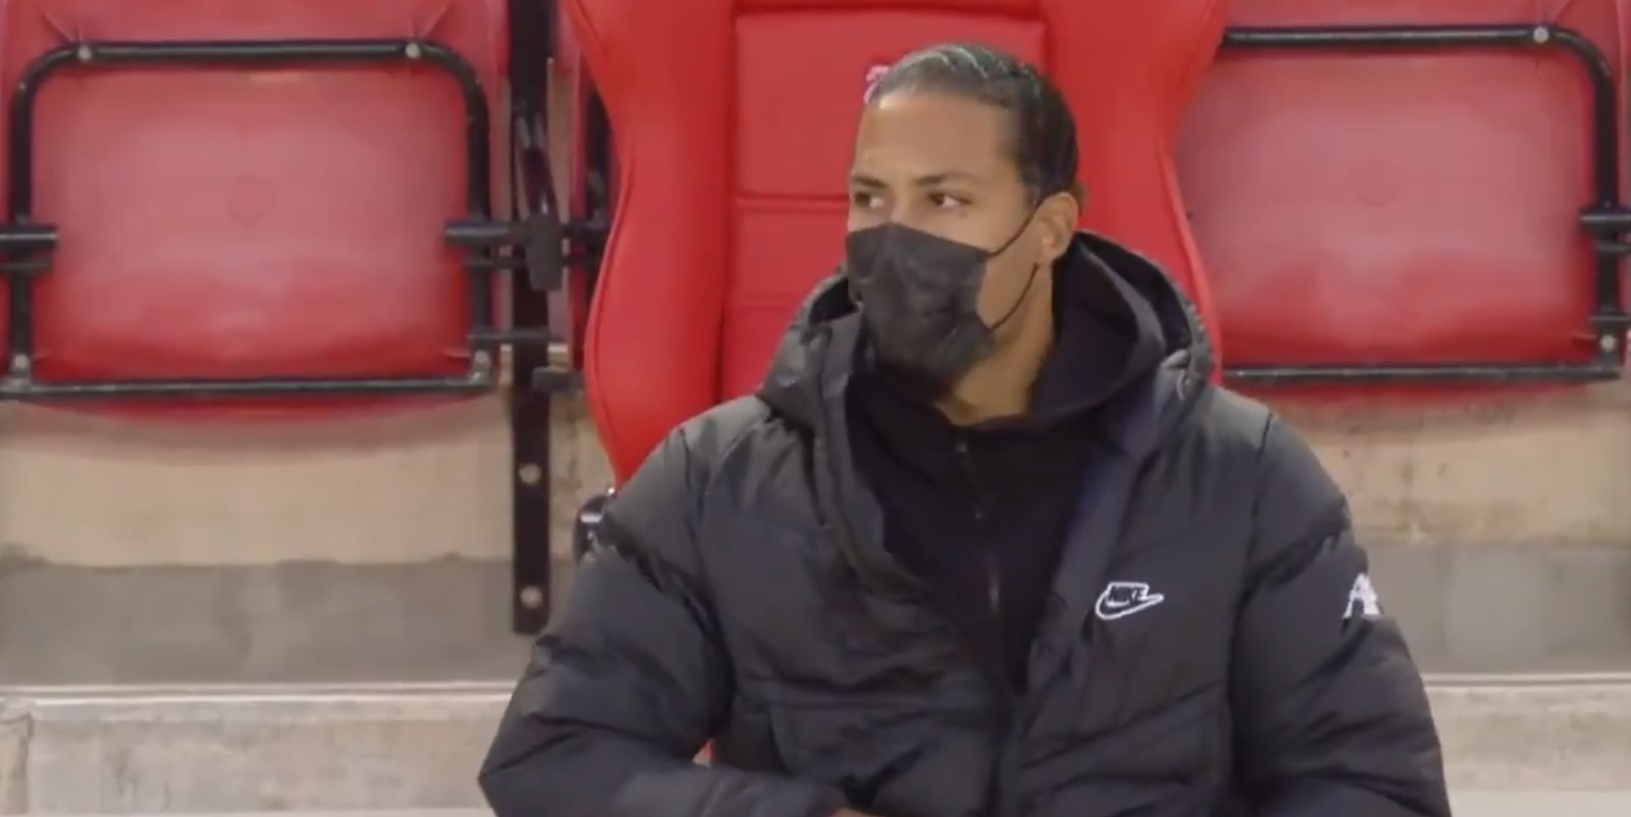 (Video) Virgil van Dijk makes a return to the stands for the Merseyside derby